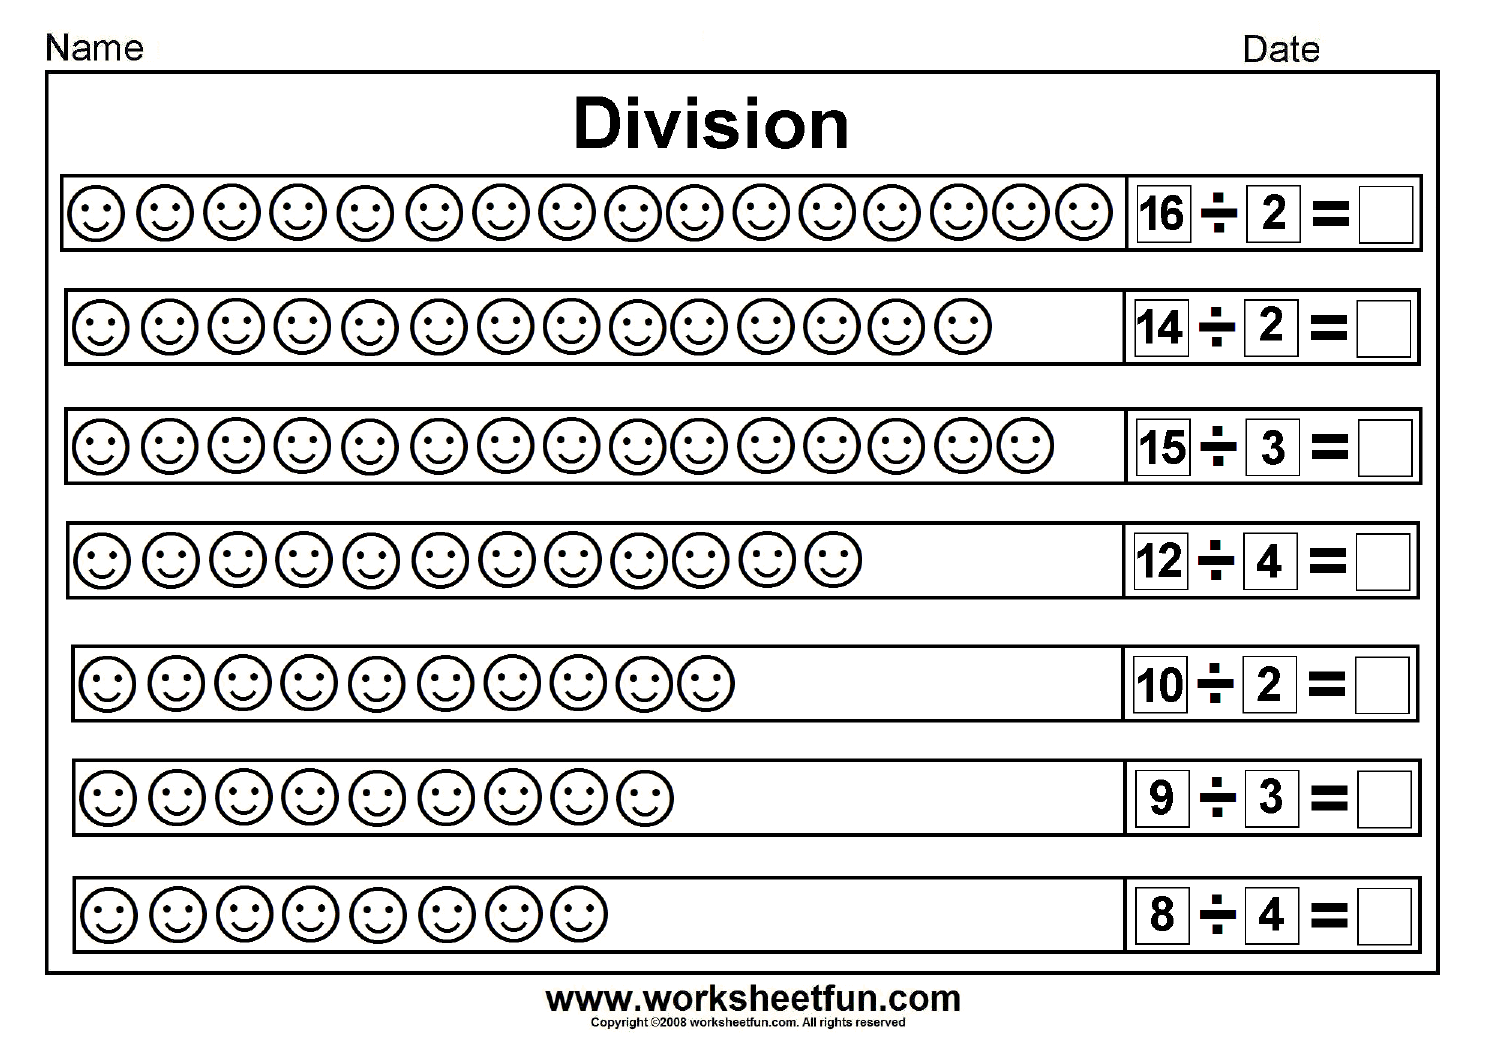 Division Worksheets For 3rd Grade Worksheet – Division Worksheets for 3rd Grade